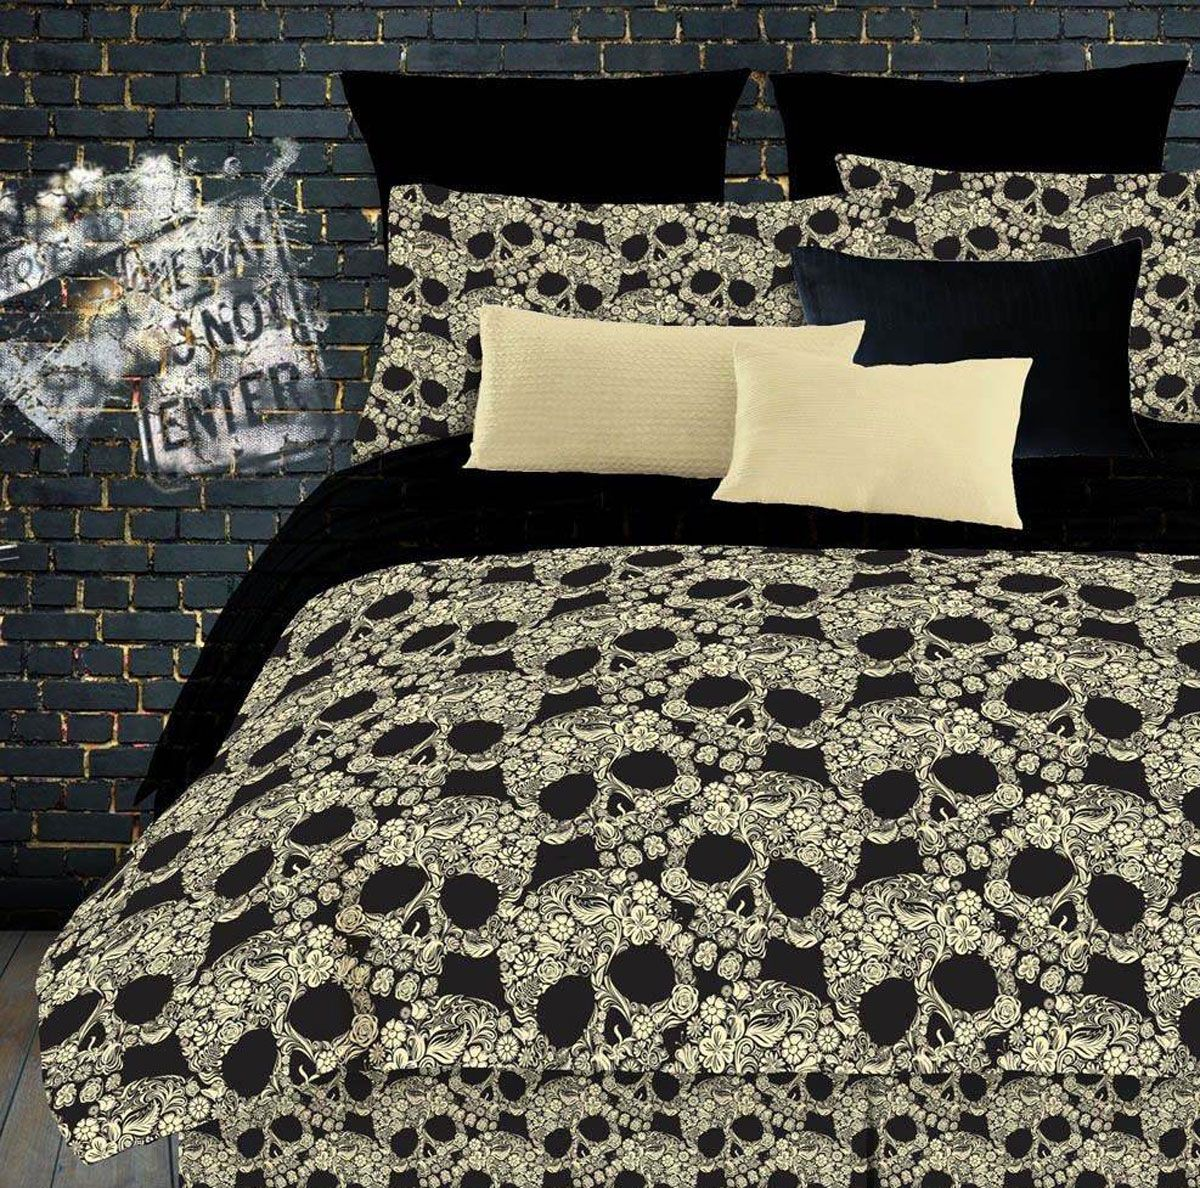 Street Revival By Vertex Skull Sheet Sets Avaialble Everywhere Comforter Sets Skull Bedding Home Decor